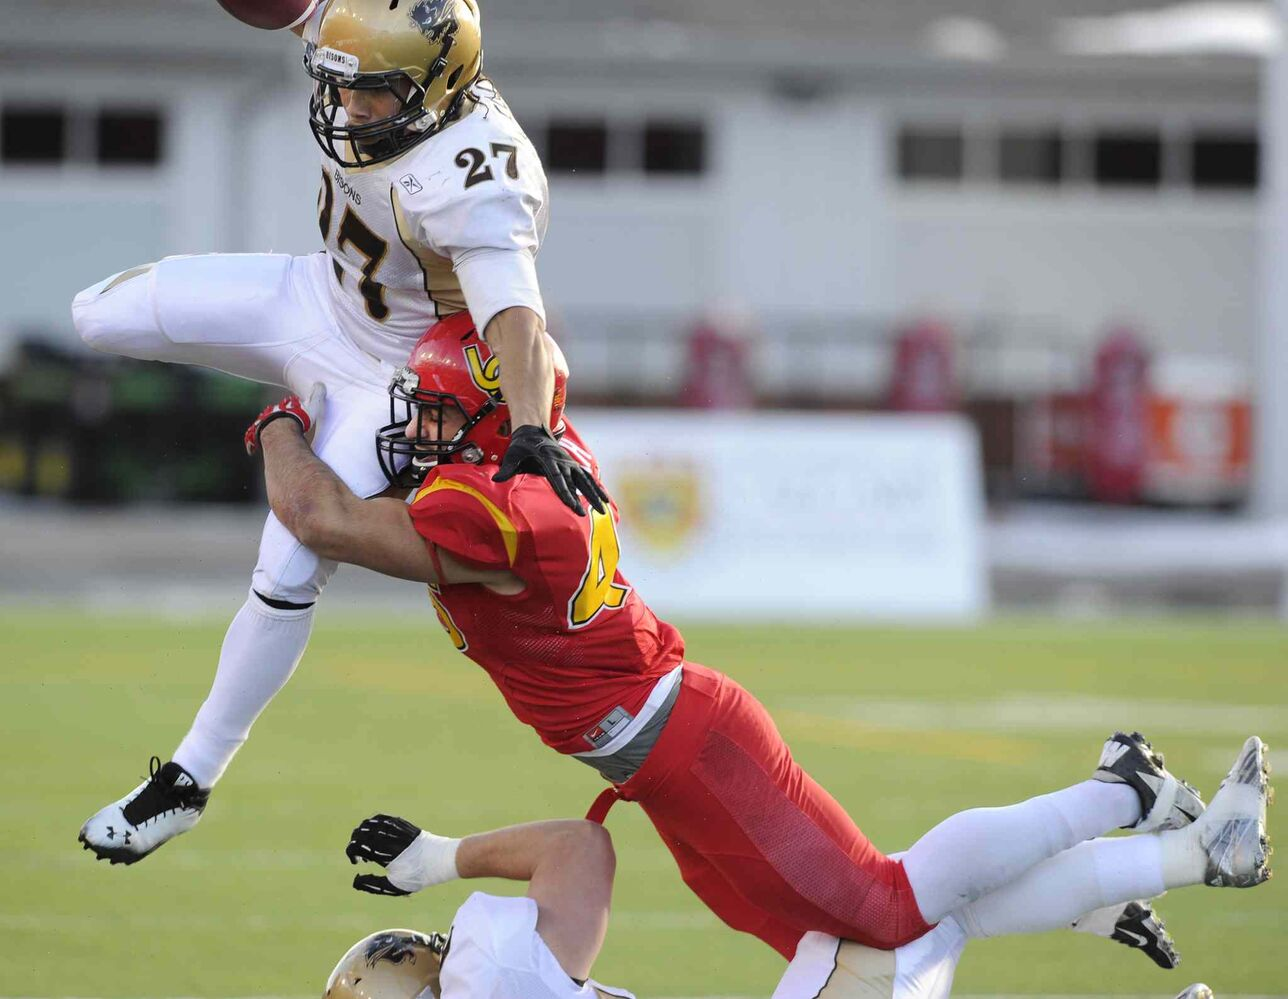 Kienan LaFrance (left) is tackled by Cory Roboch of the DInos during the first half.